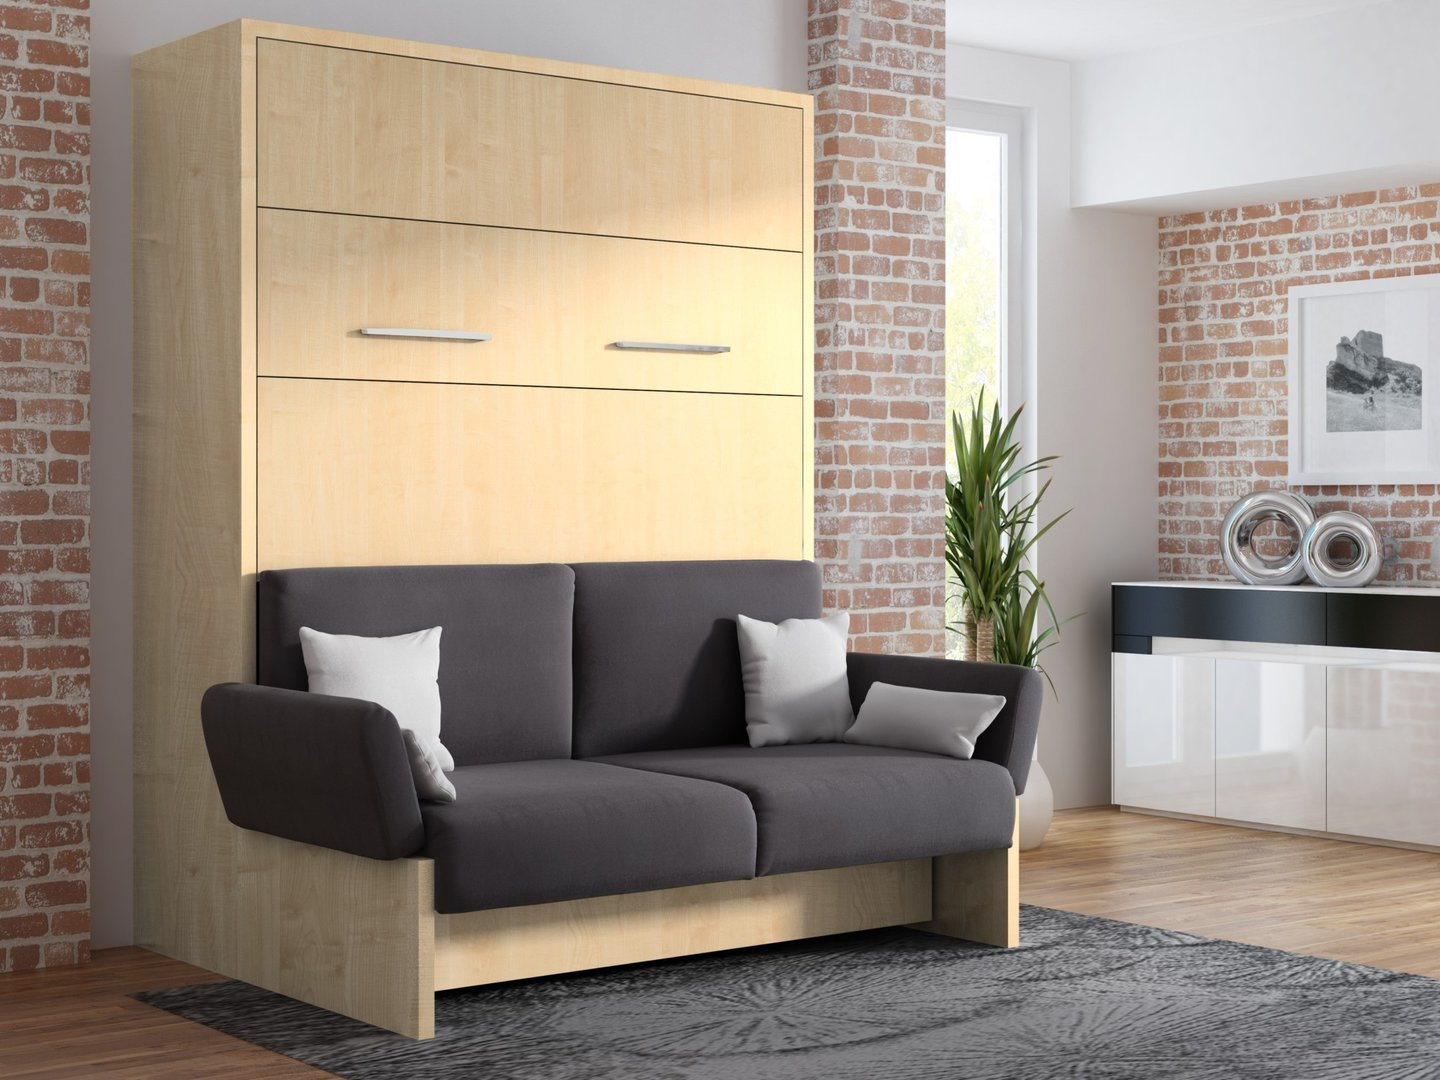 wandbett mit sofa wbs 1 soft 140 x 200 cm in ahorn honig. Black Bedroom Furniture Sets. Home Design Ideas